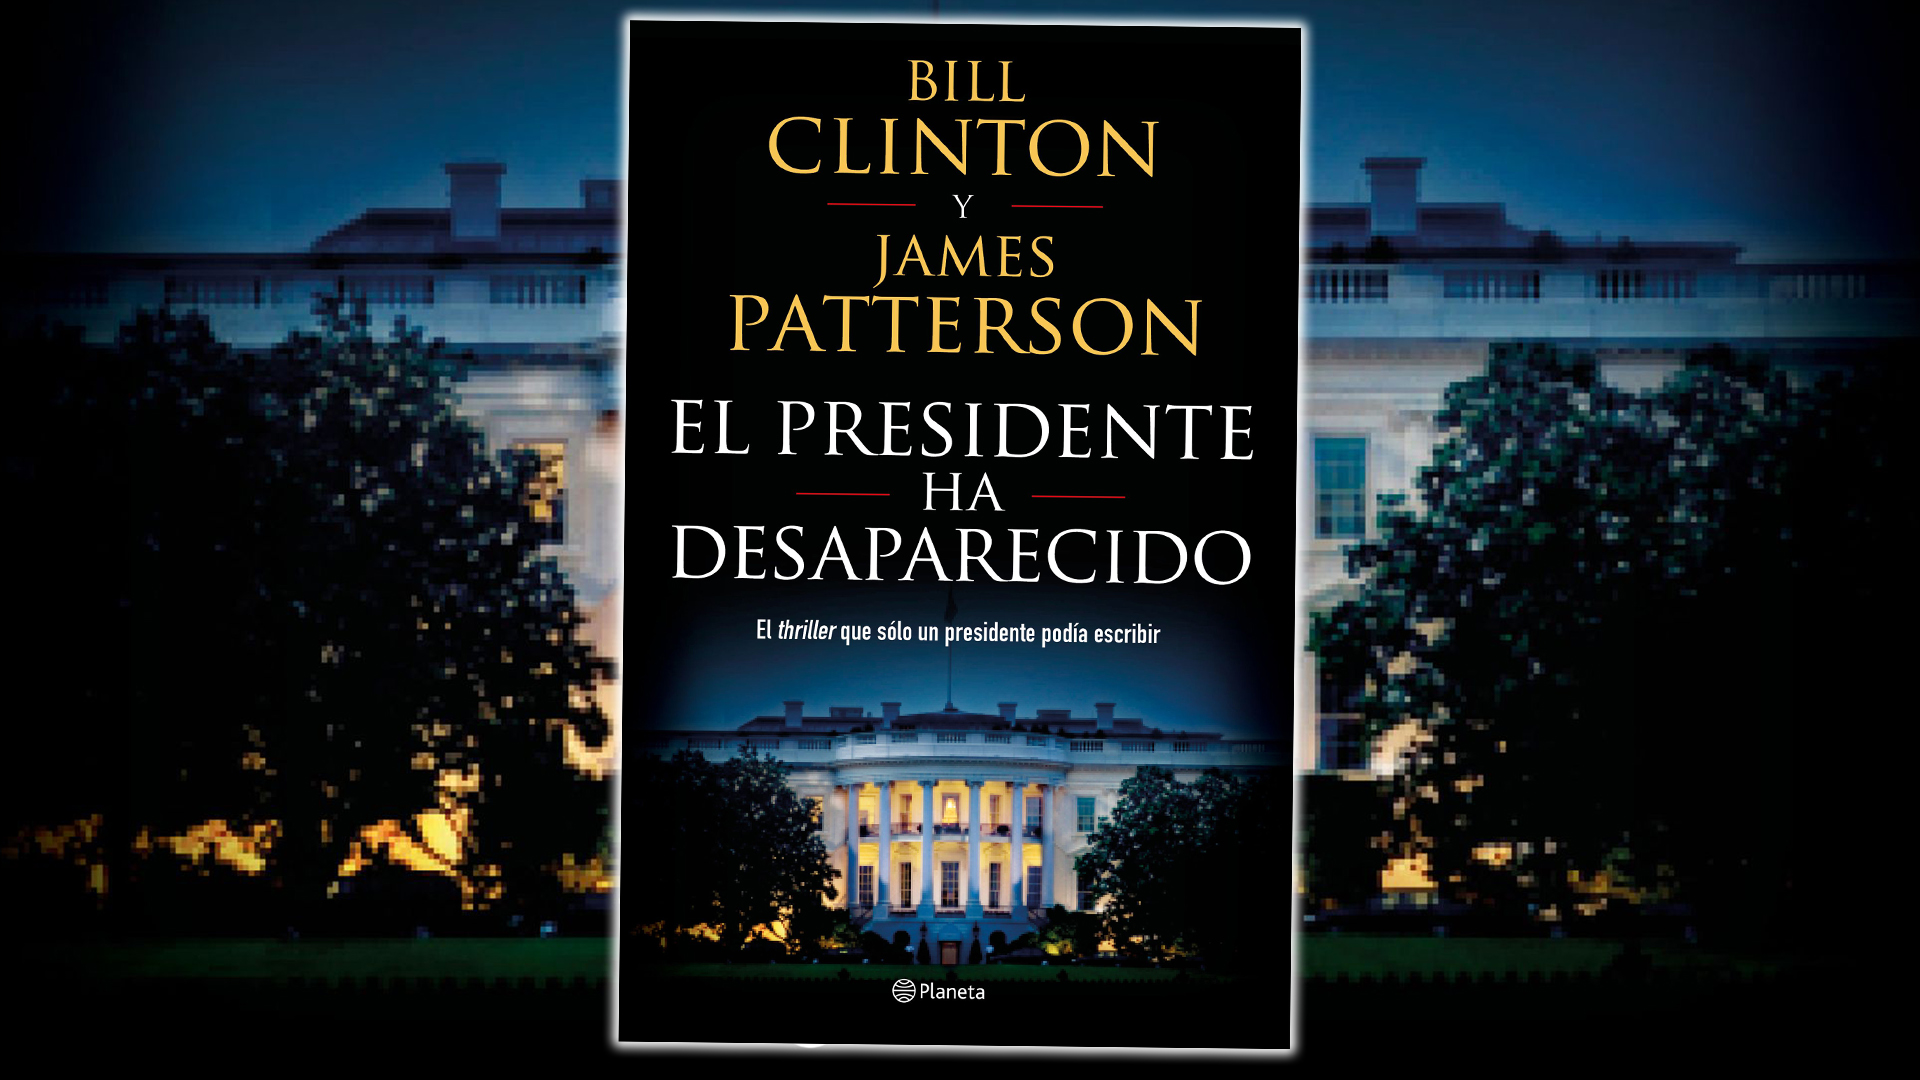 El-presidente-ha-desaparecido-Bill-Clinton-y-James-Patterson-Portada-Web